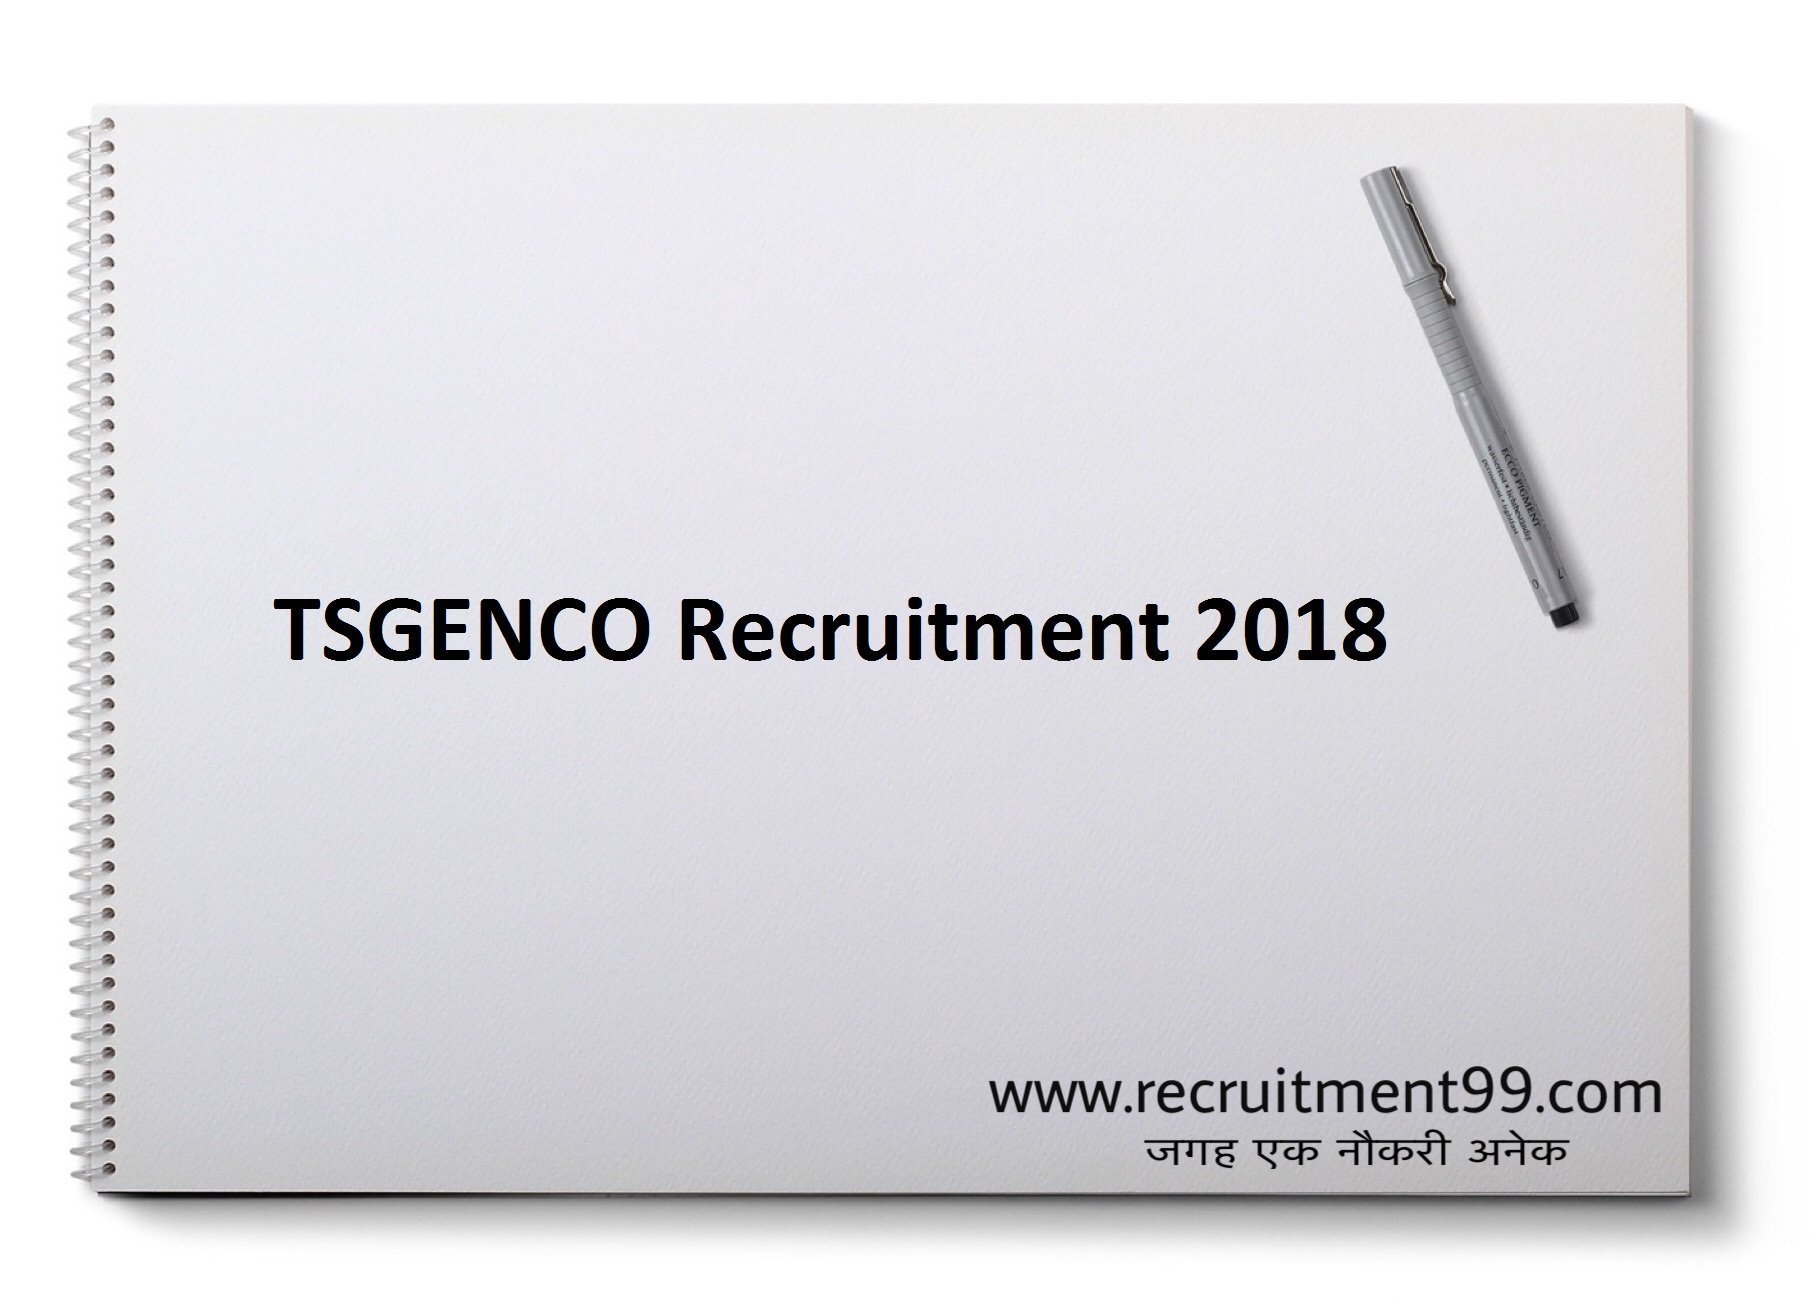 TSGENCO Assistant Manager (HR) Recruitment Admit Card & Result 2018